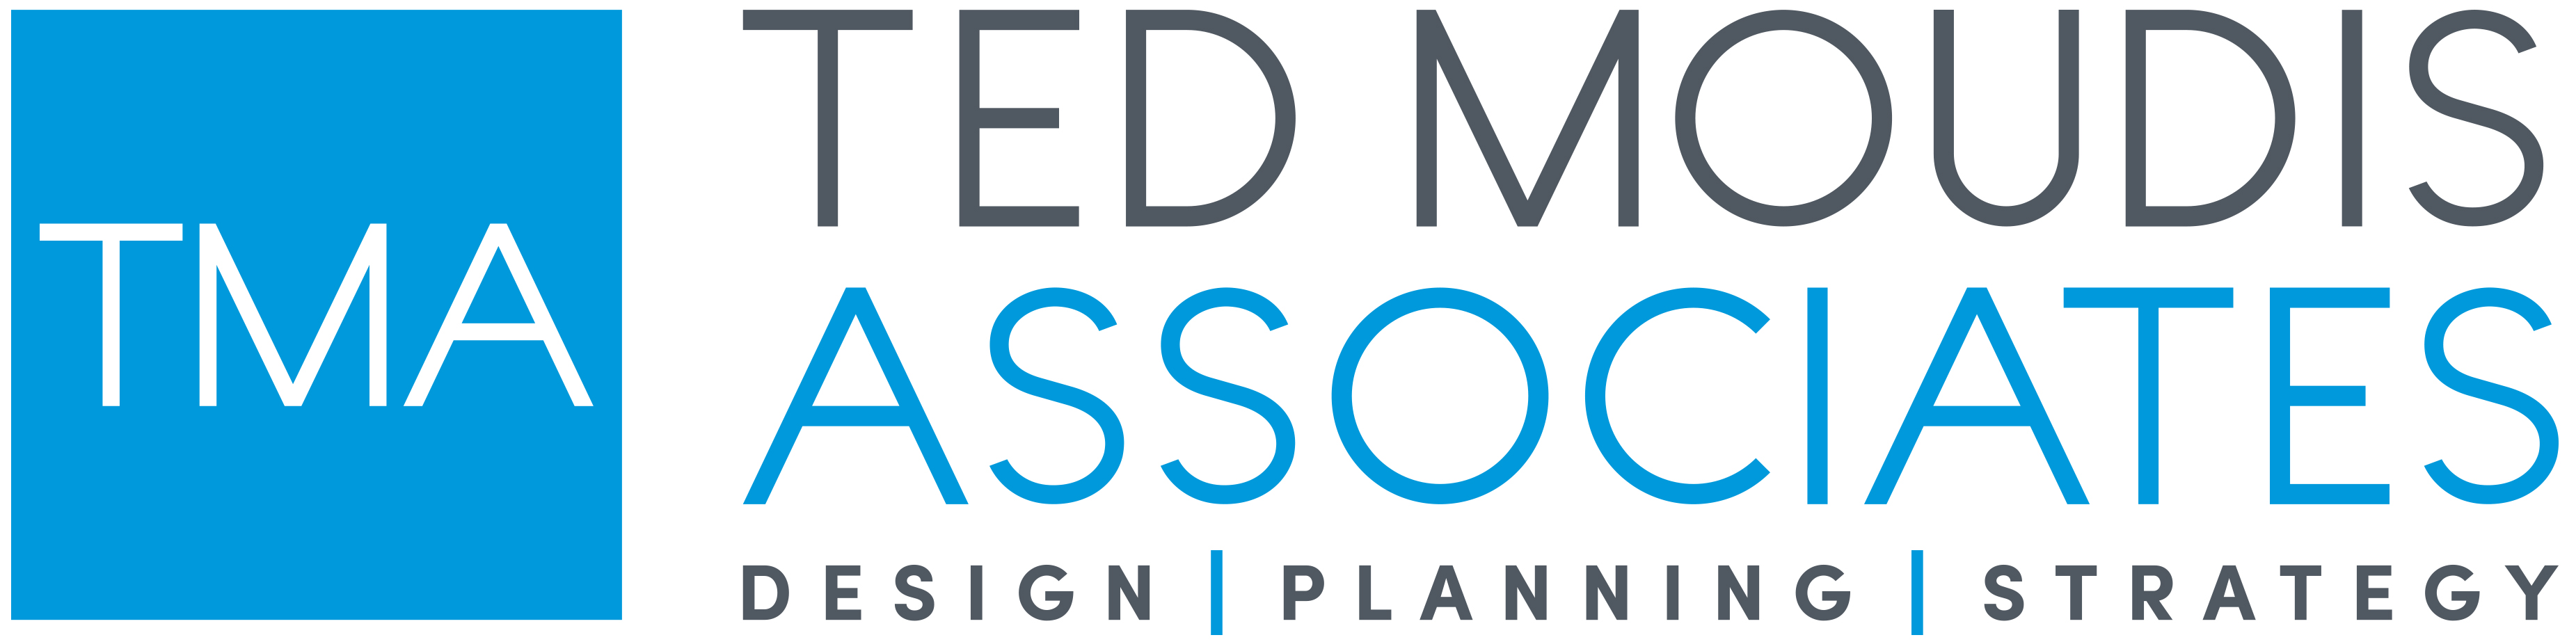 Ted Moudis Associates Is A Leading Edge Architectural And Interior Design Firm Ranked As One Of The Top 10 Firms In New York